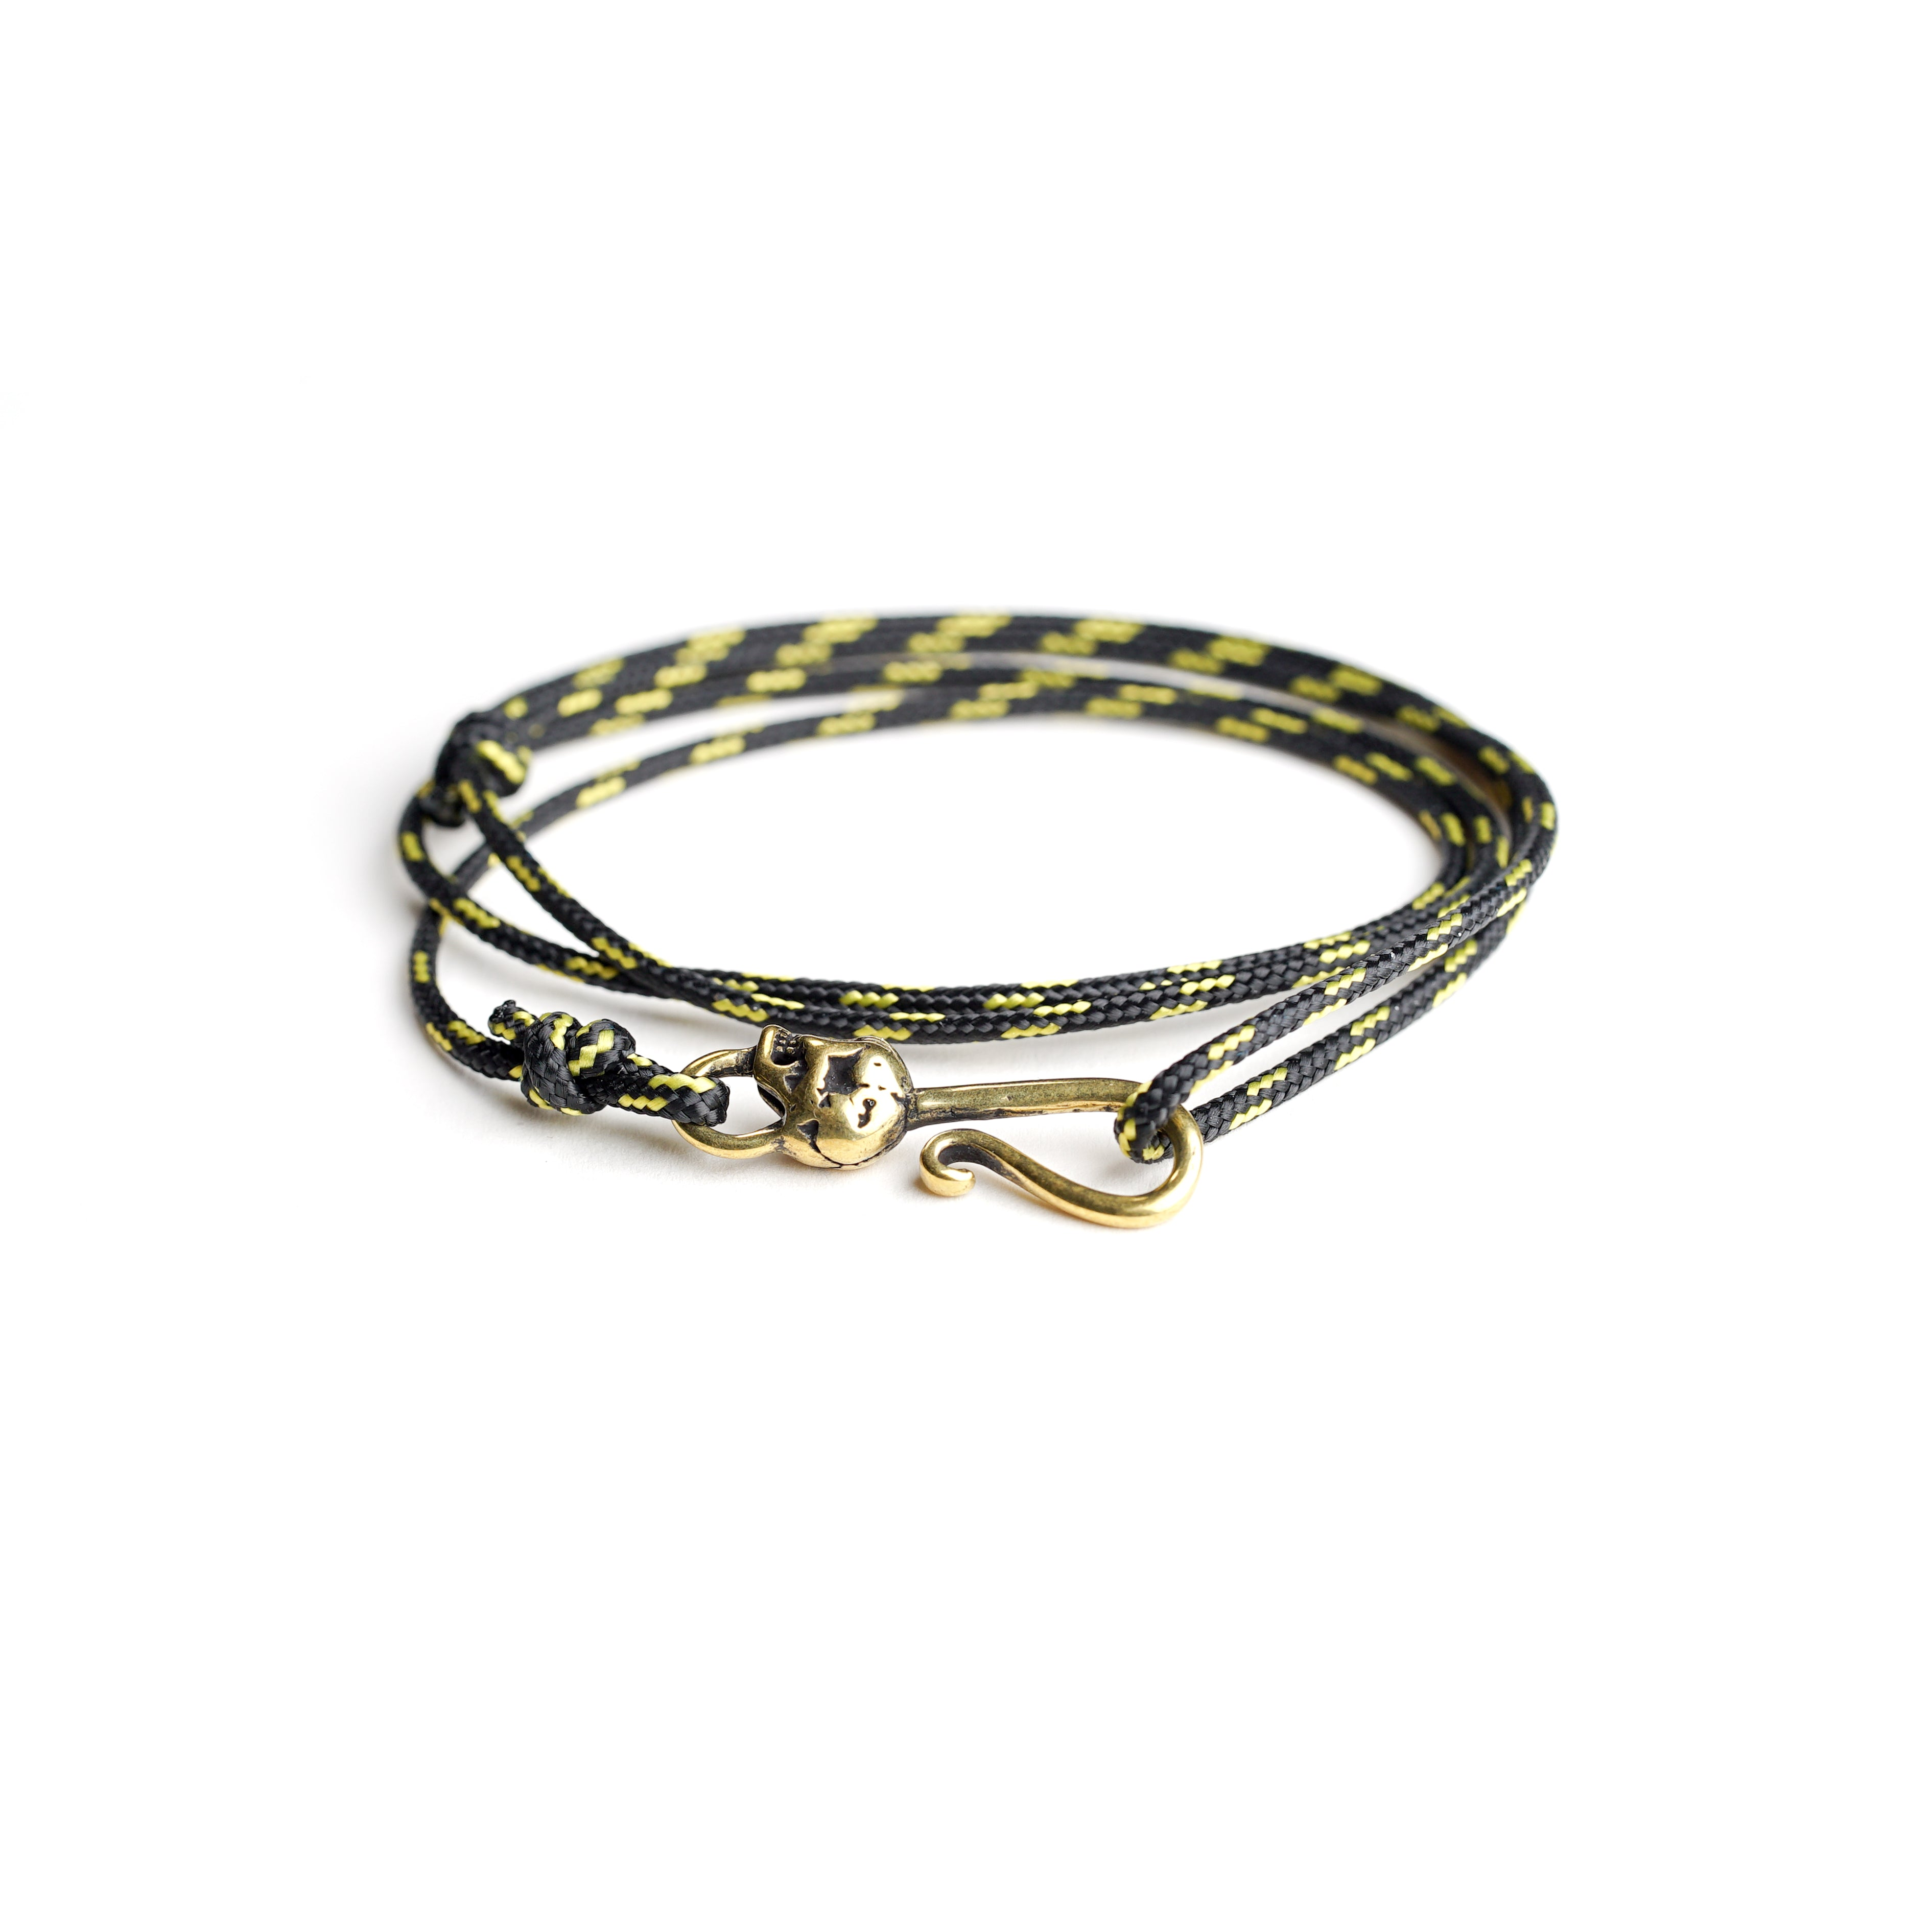 Paracord bracelet with skull - black and yellow